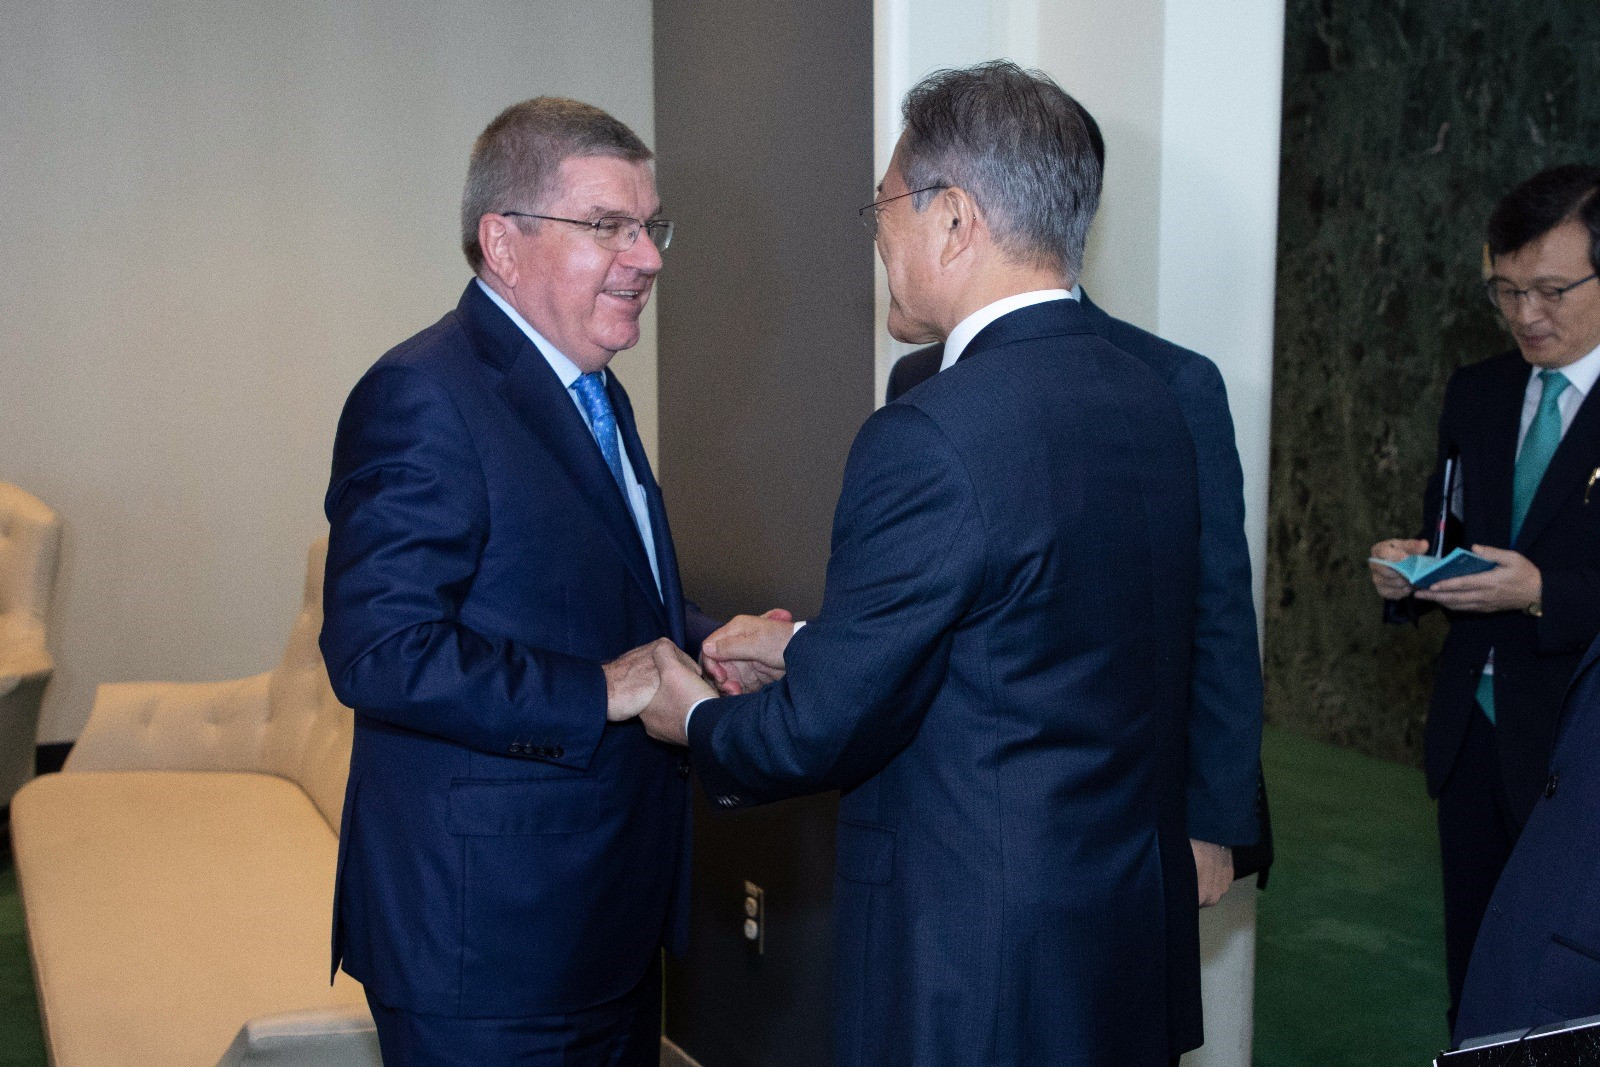 Thomas Bach, left, held talks with Moon Jae-in today ©IOC